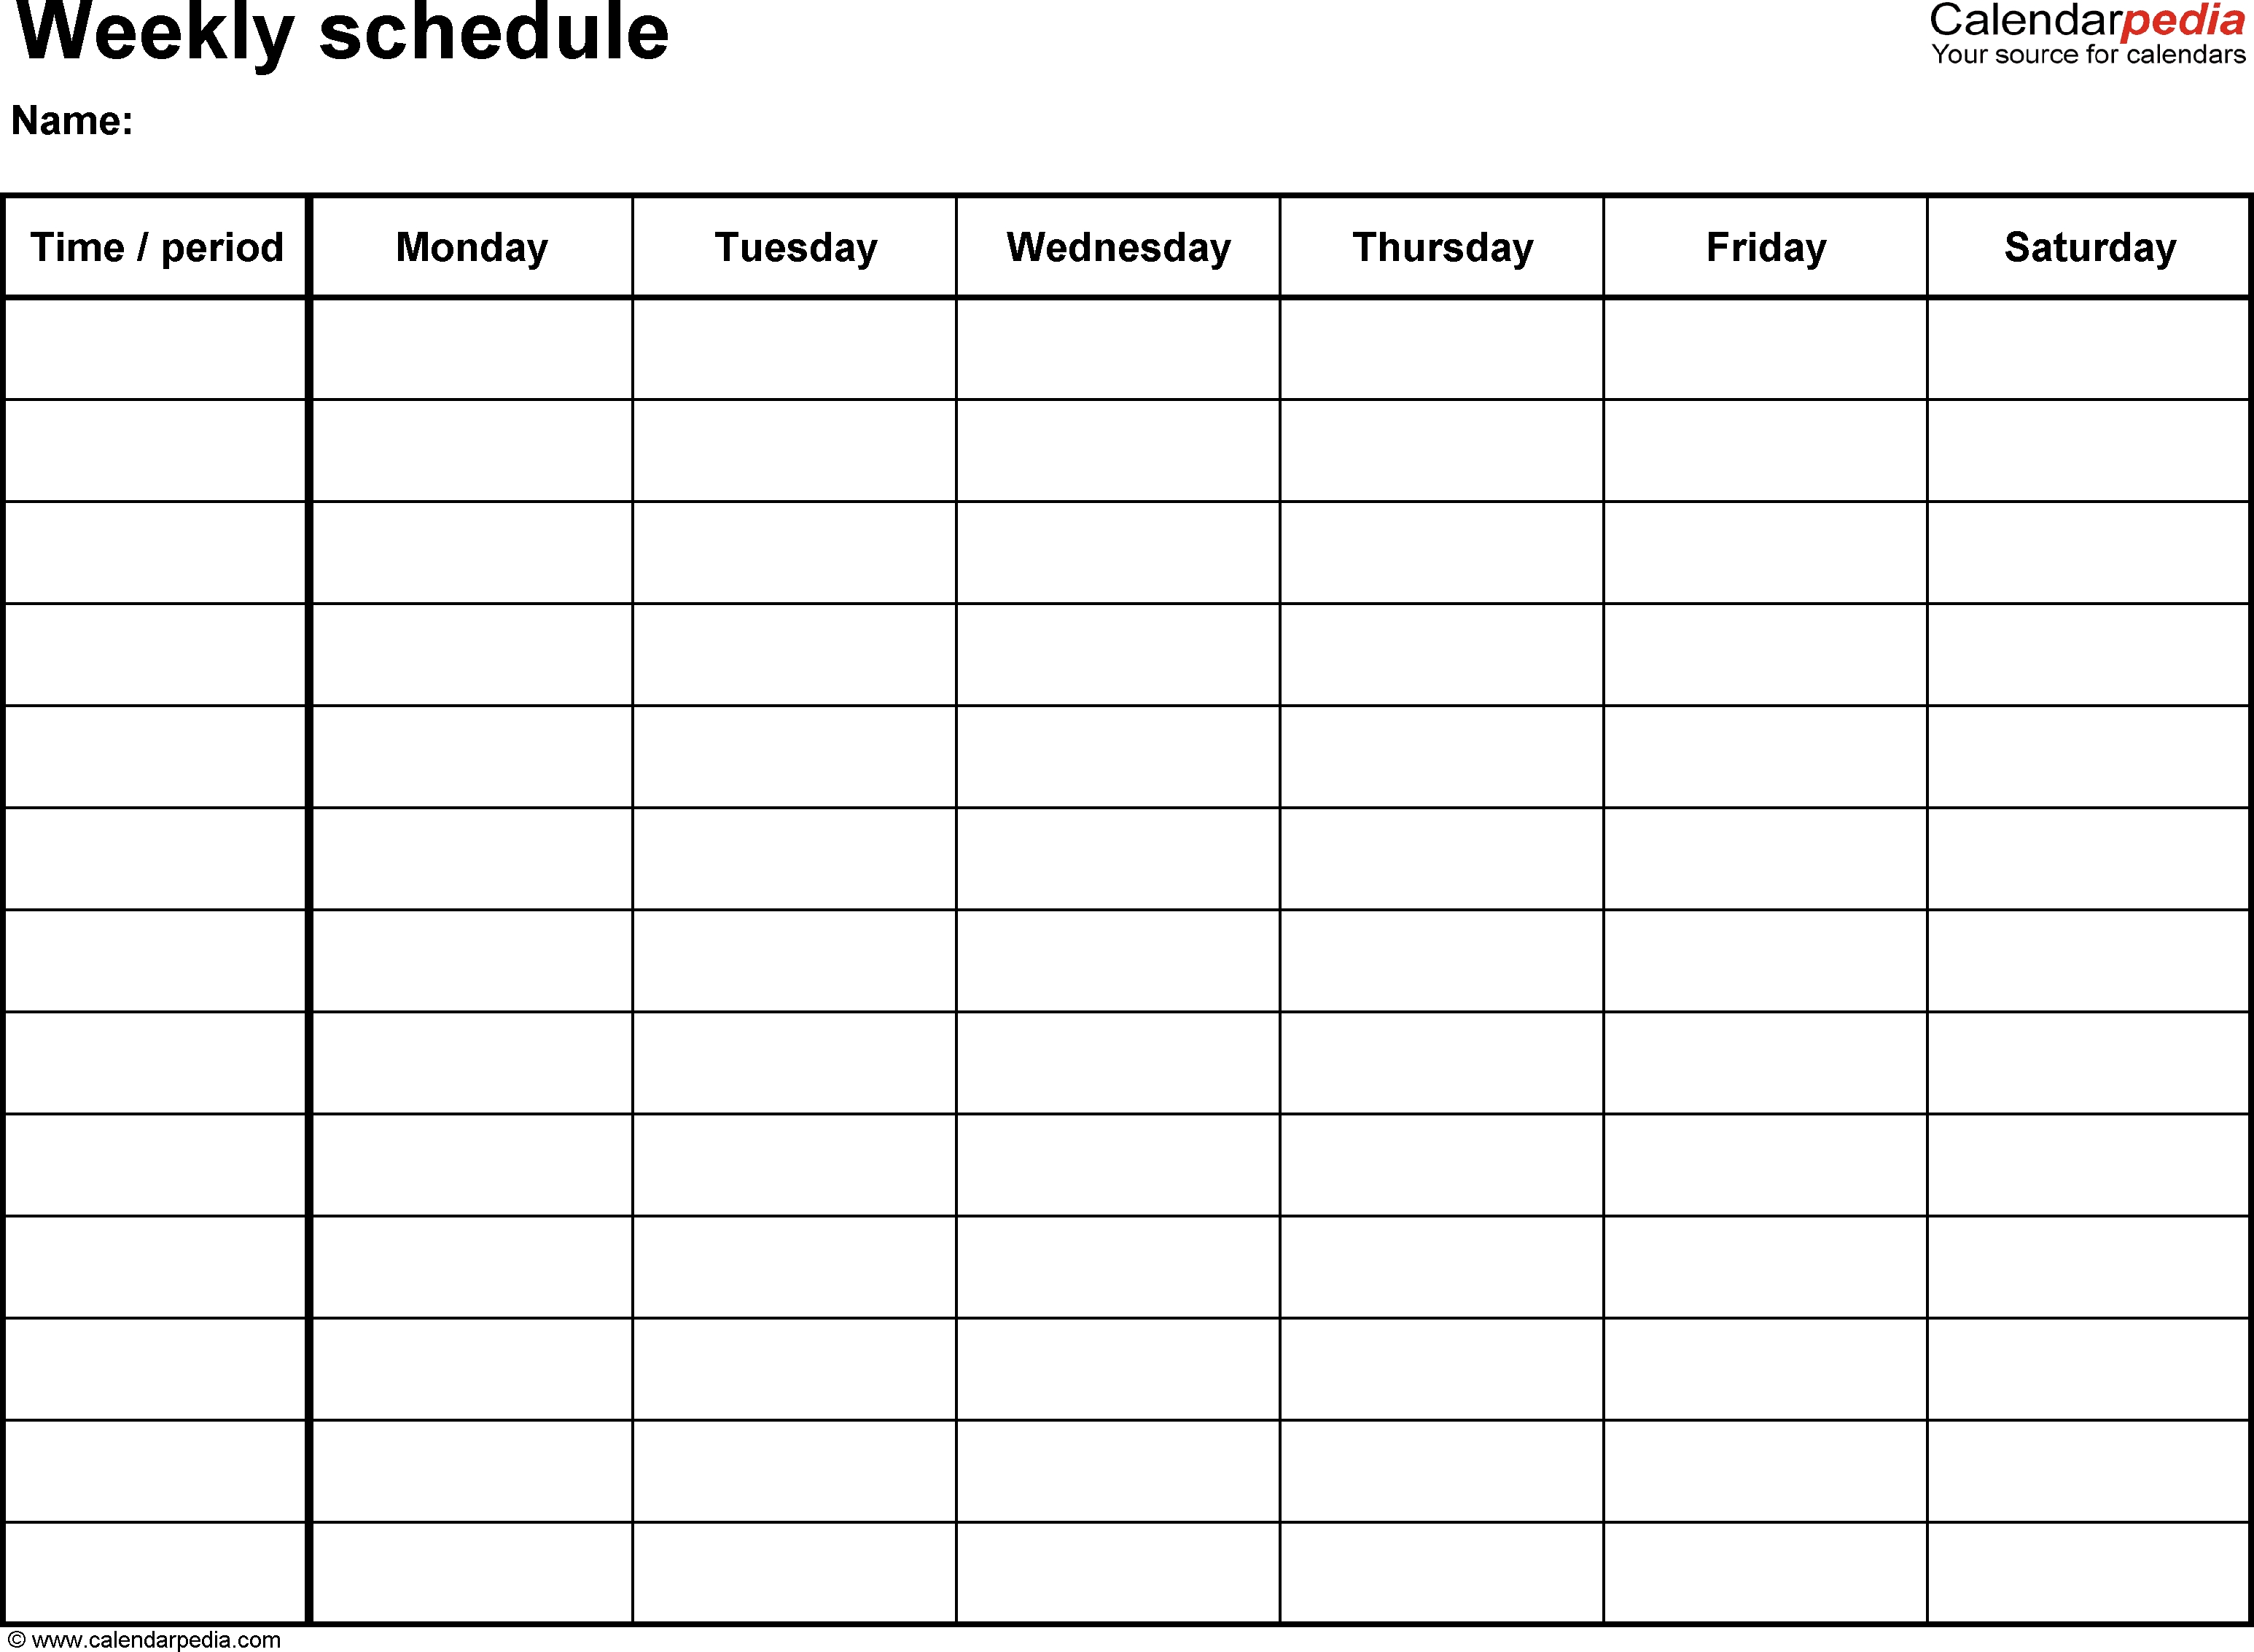 Free Printable Weekly Calendar With Times Time And Dates | Smorad with regard to Printable Full Size Blank Calendar